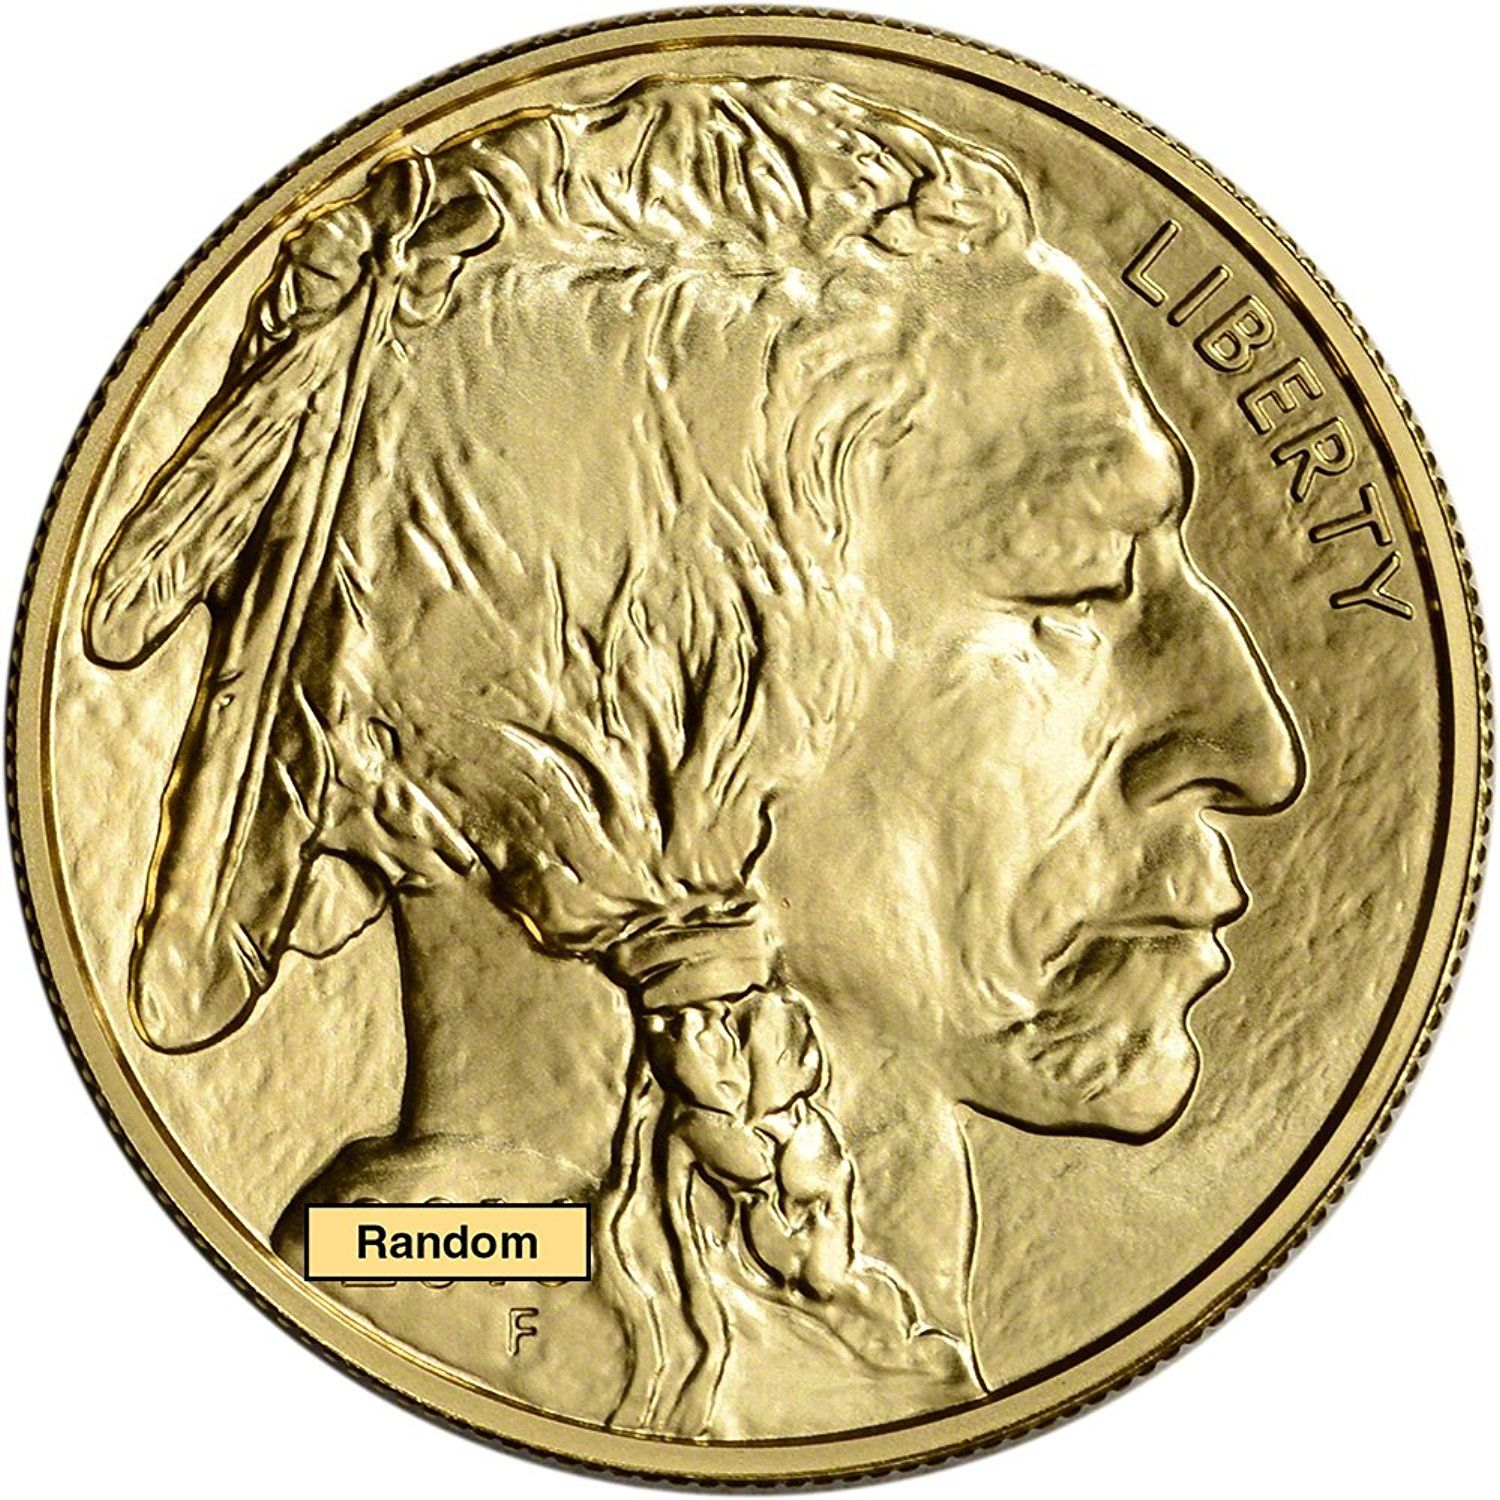 American Gold Buffalo Bu Random Date 50 Uncirculated Us Mint You Can Find Out More Details At The Li Gold Coins Gold Bullion Coins Gold Eagle Coins